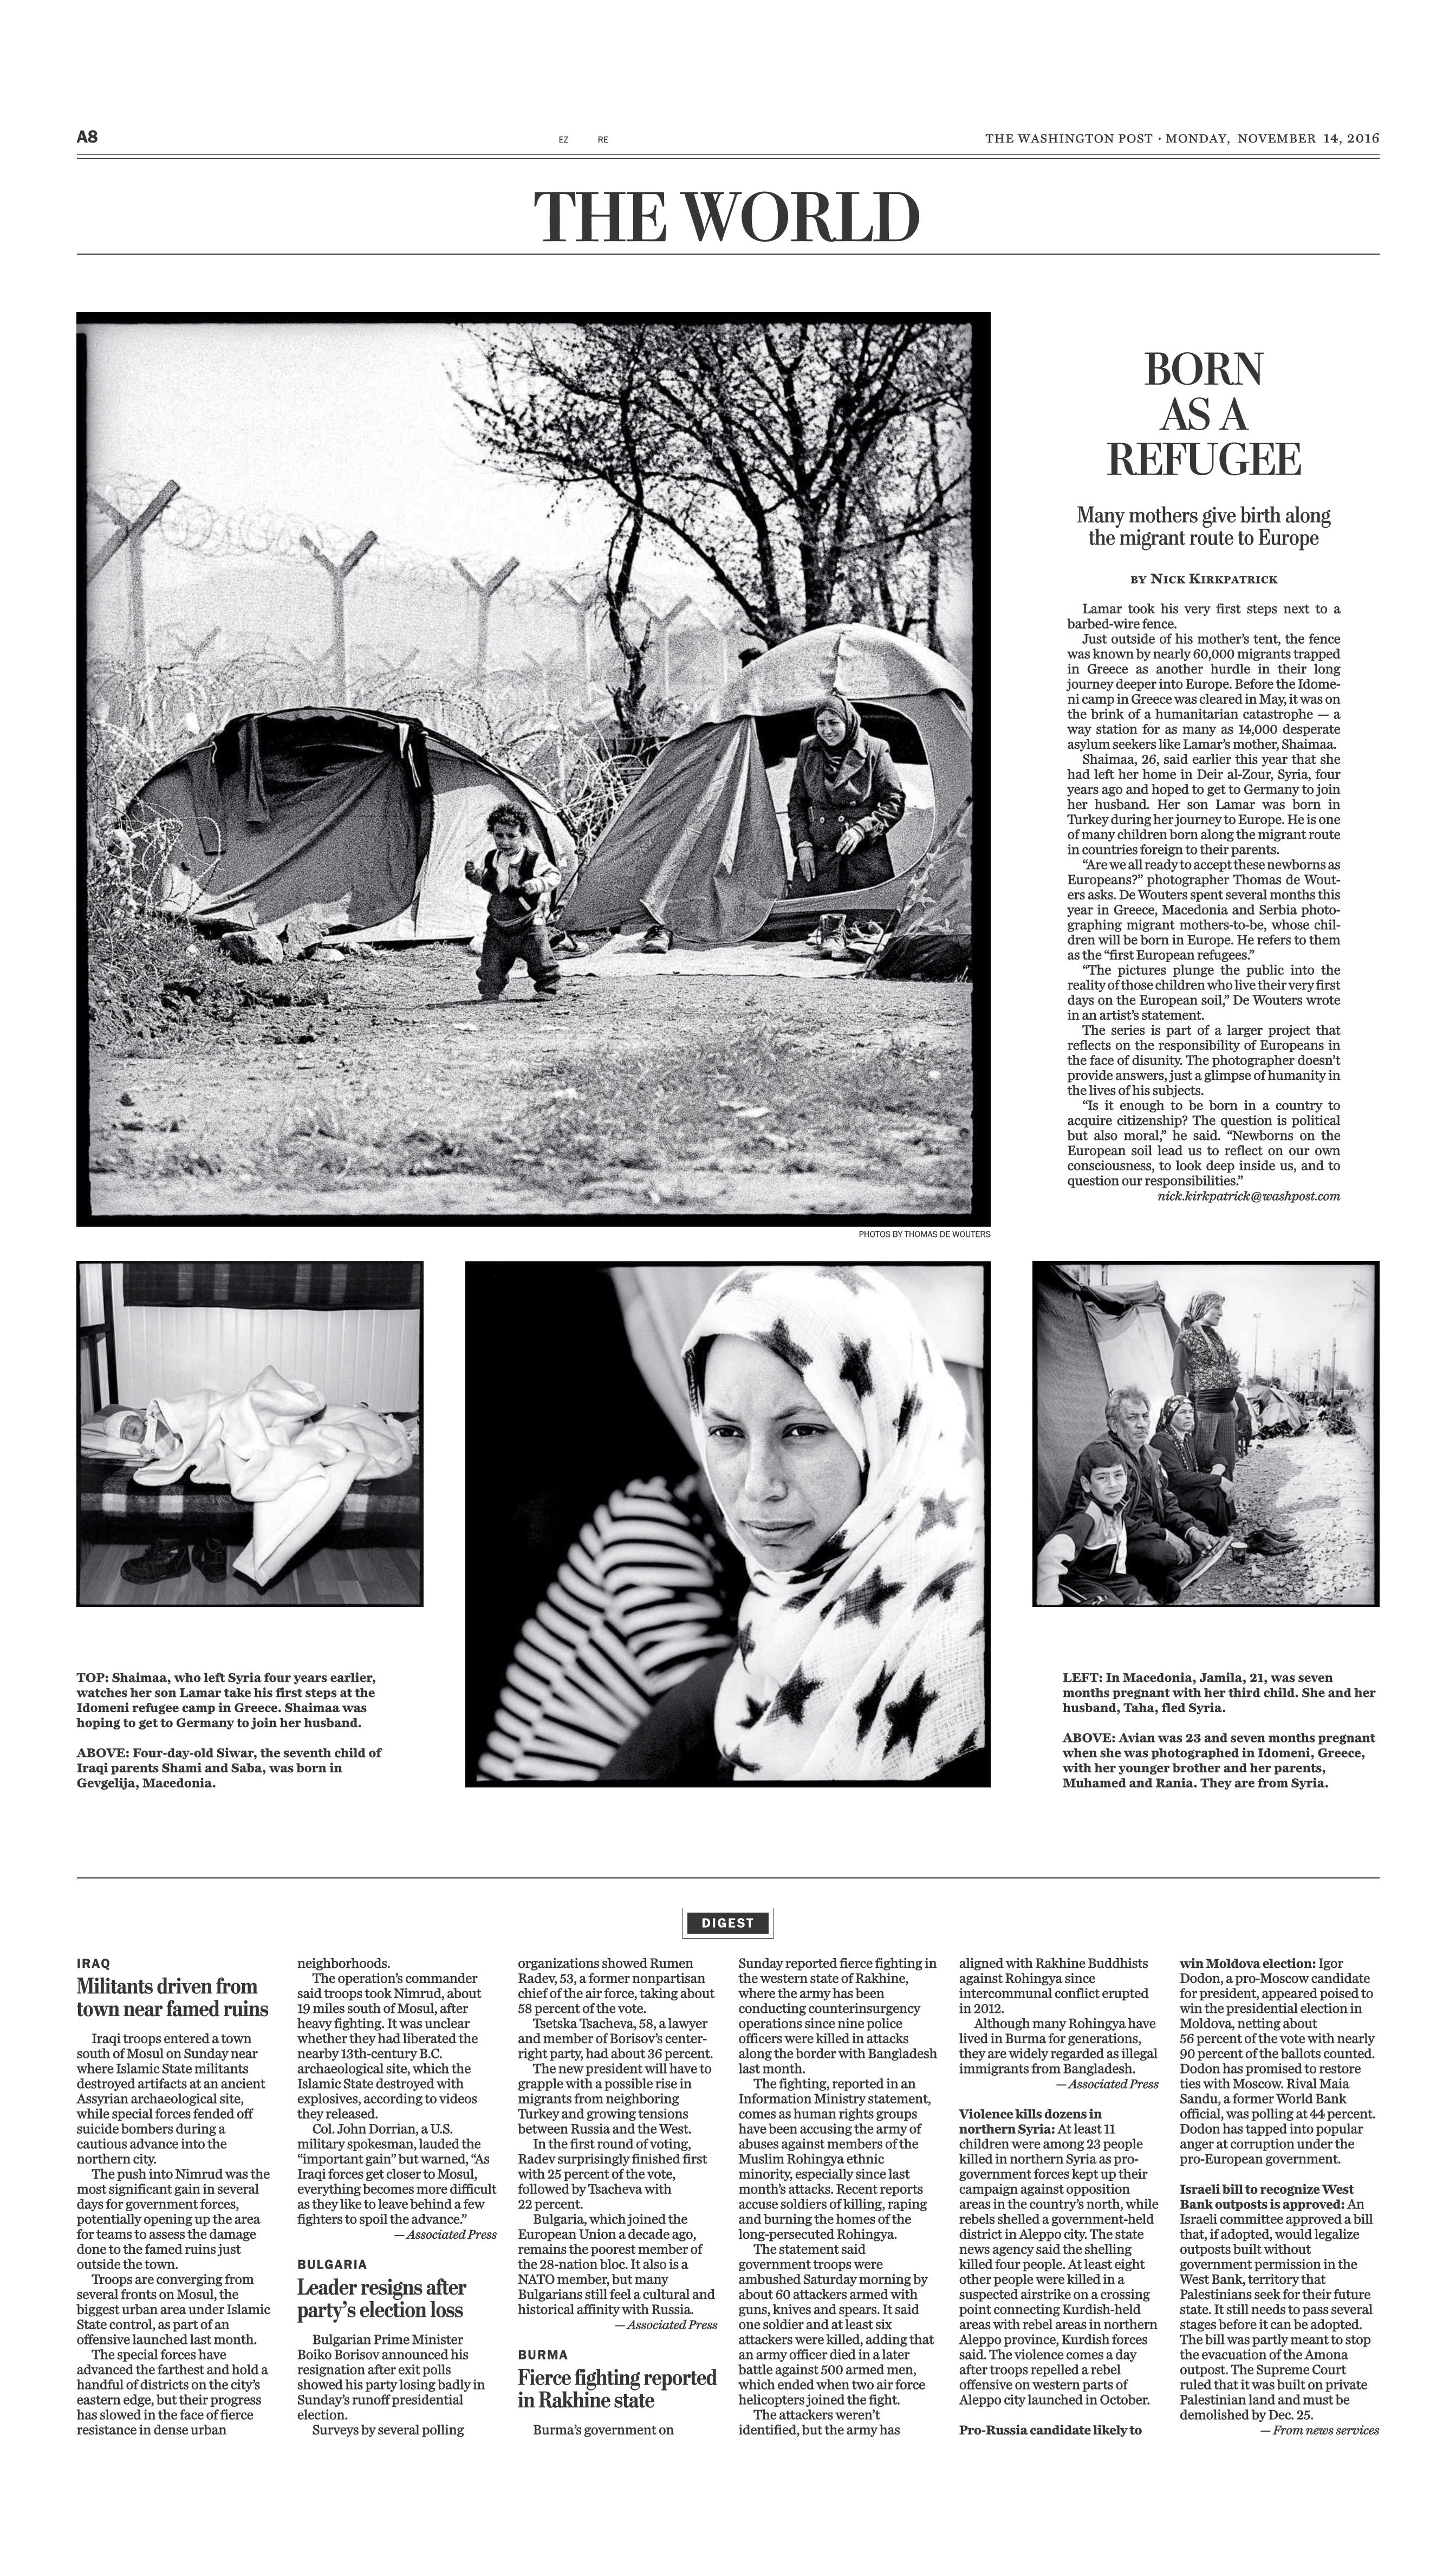 20161114_WashPost_paper.ed